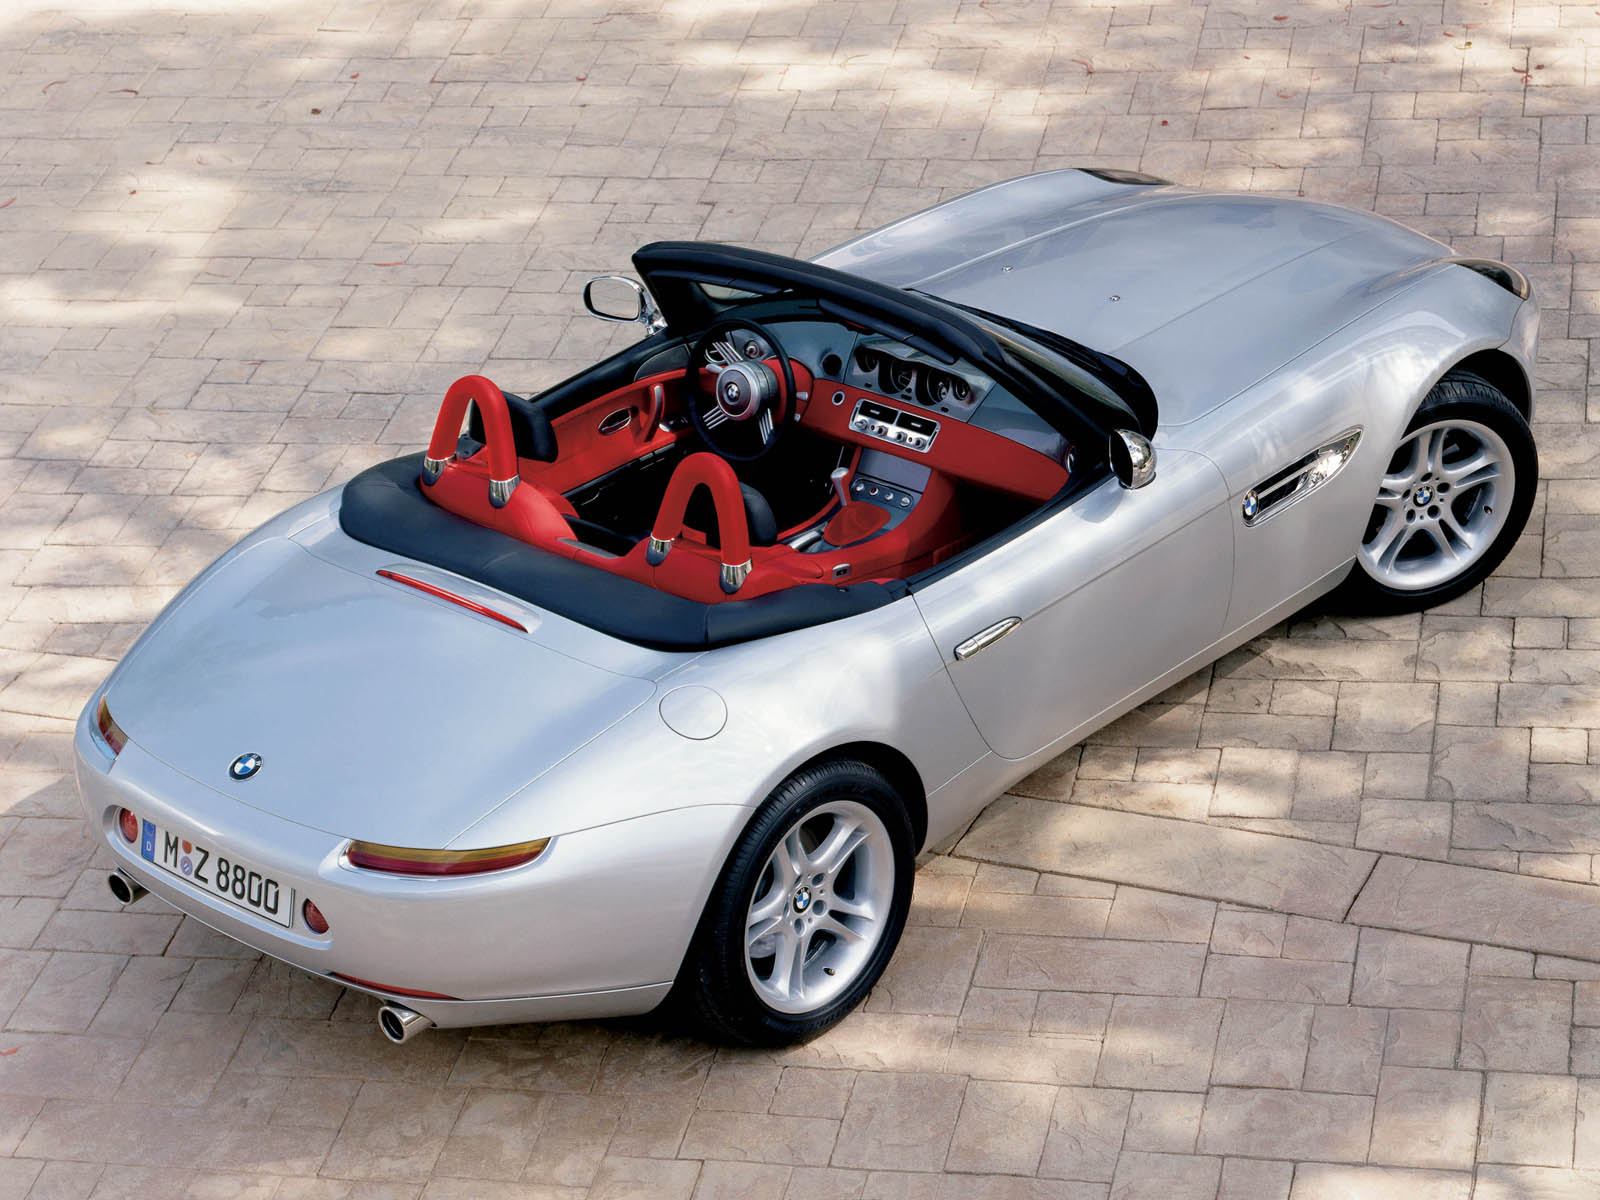 Photo bmw z8, wallpaper bmw z8, image bmw z8, fond d'ecran bmw z8, bmw ...